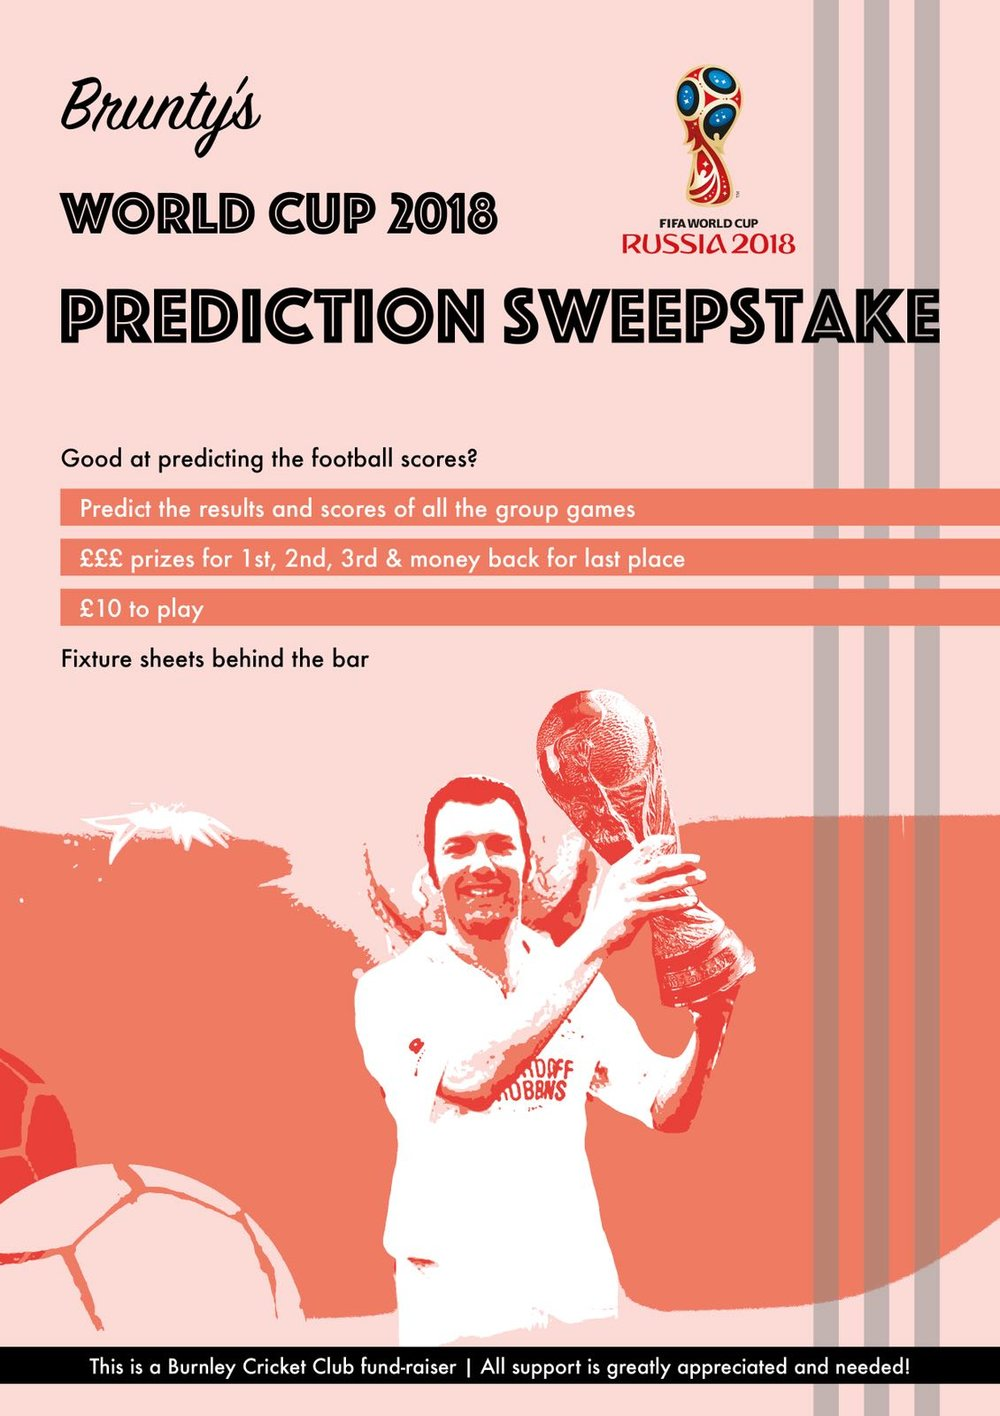 burnley+cricket+club+world+cup+prediction+sweepstake.jpeg